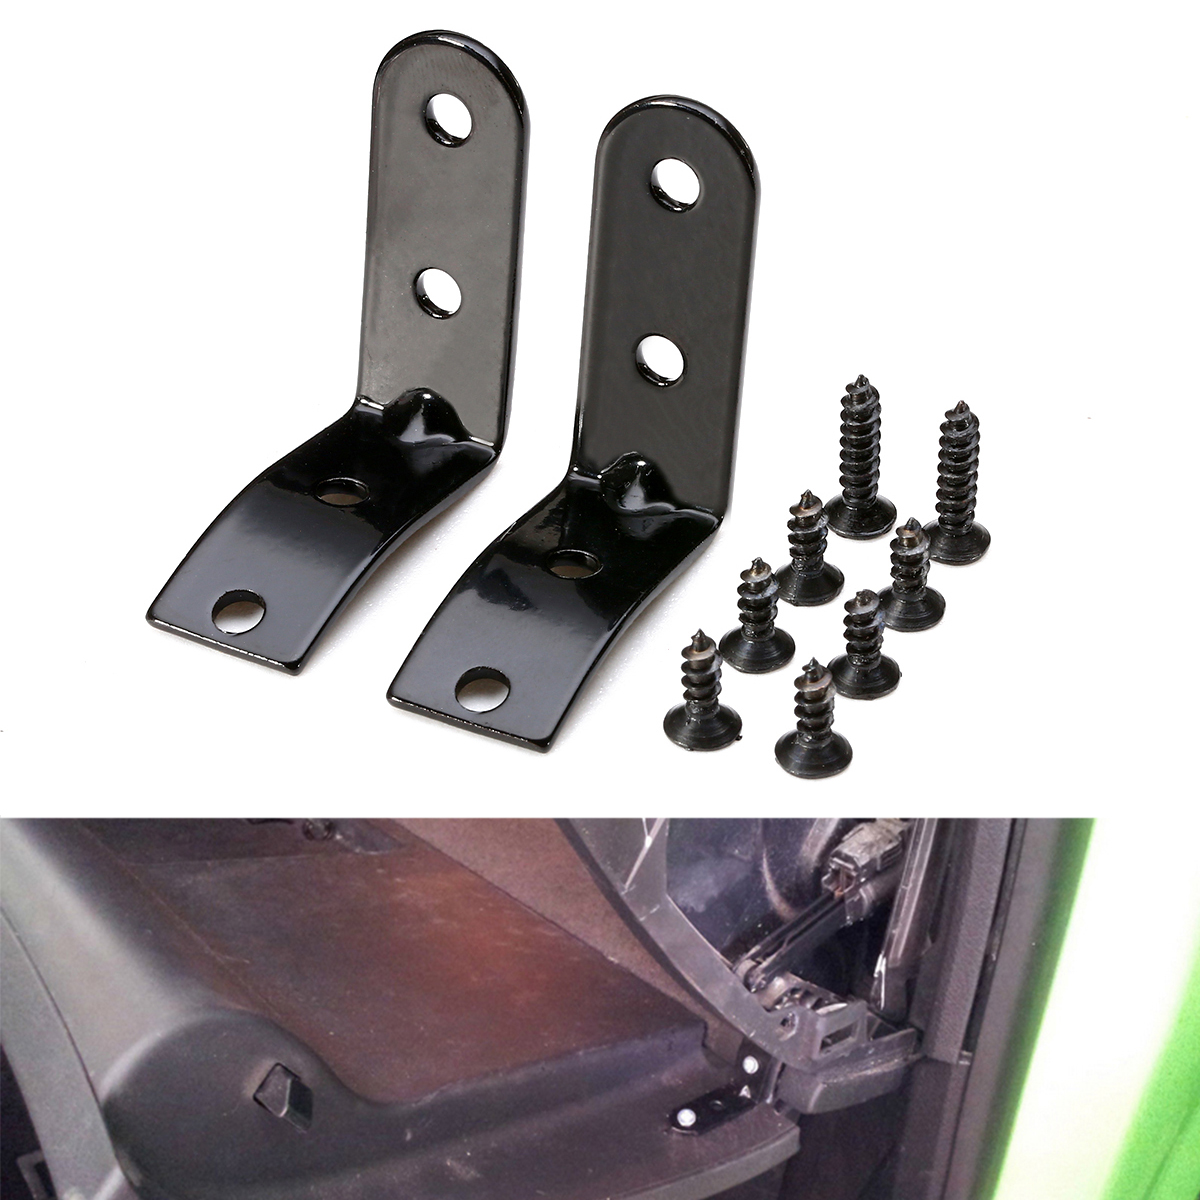 Mayitr 2 pcs Hinge Brackets + 8x Screws High Quality Glove Box Lid Hinge Snapped Repair Kit For Audi A4 B6 B7 8E 2001-2008